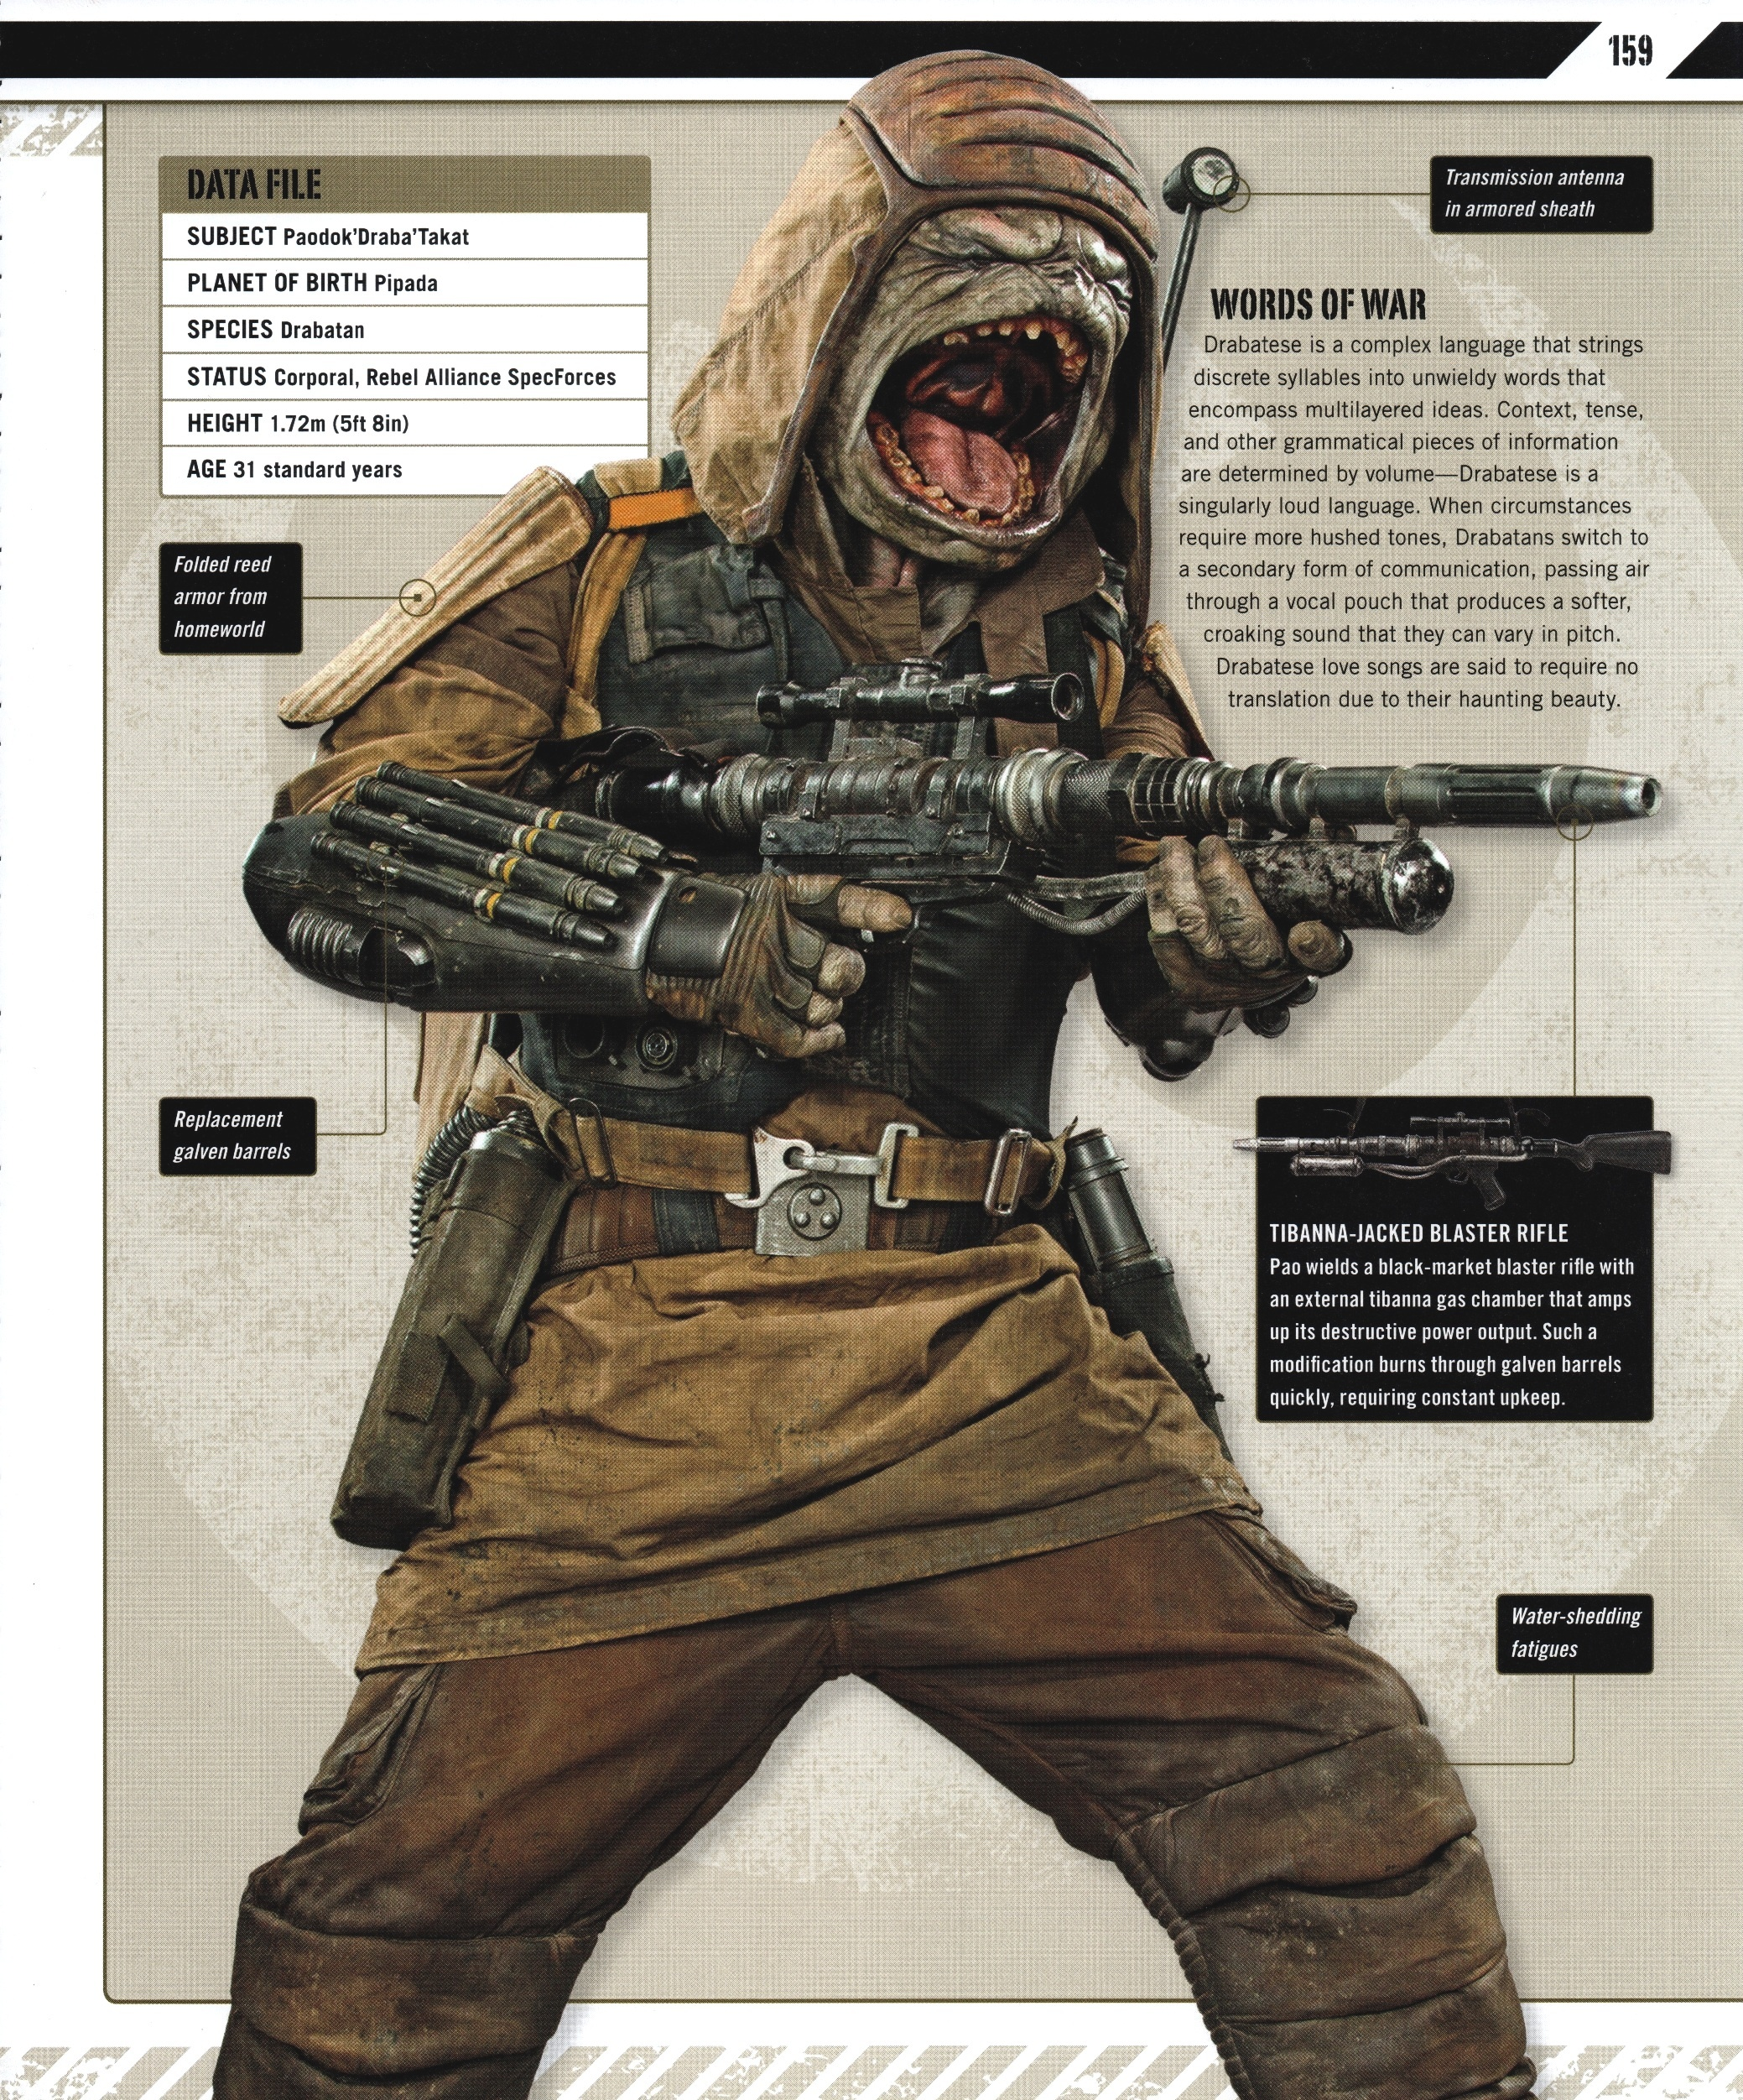 Rogue One Ultimate Visual Guide (b0bafett_Empire) p159